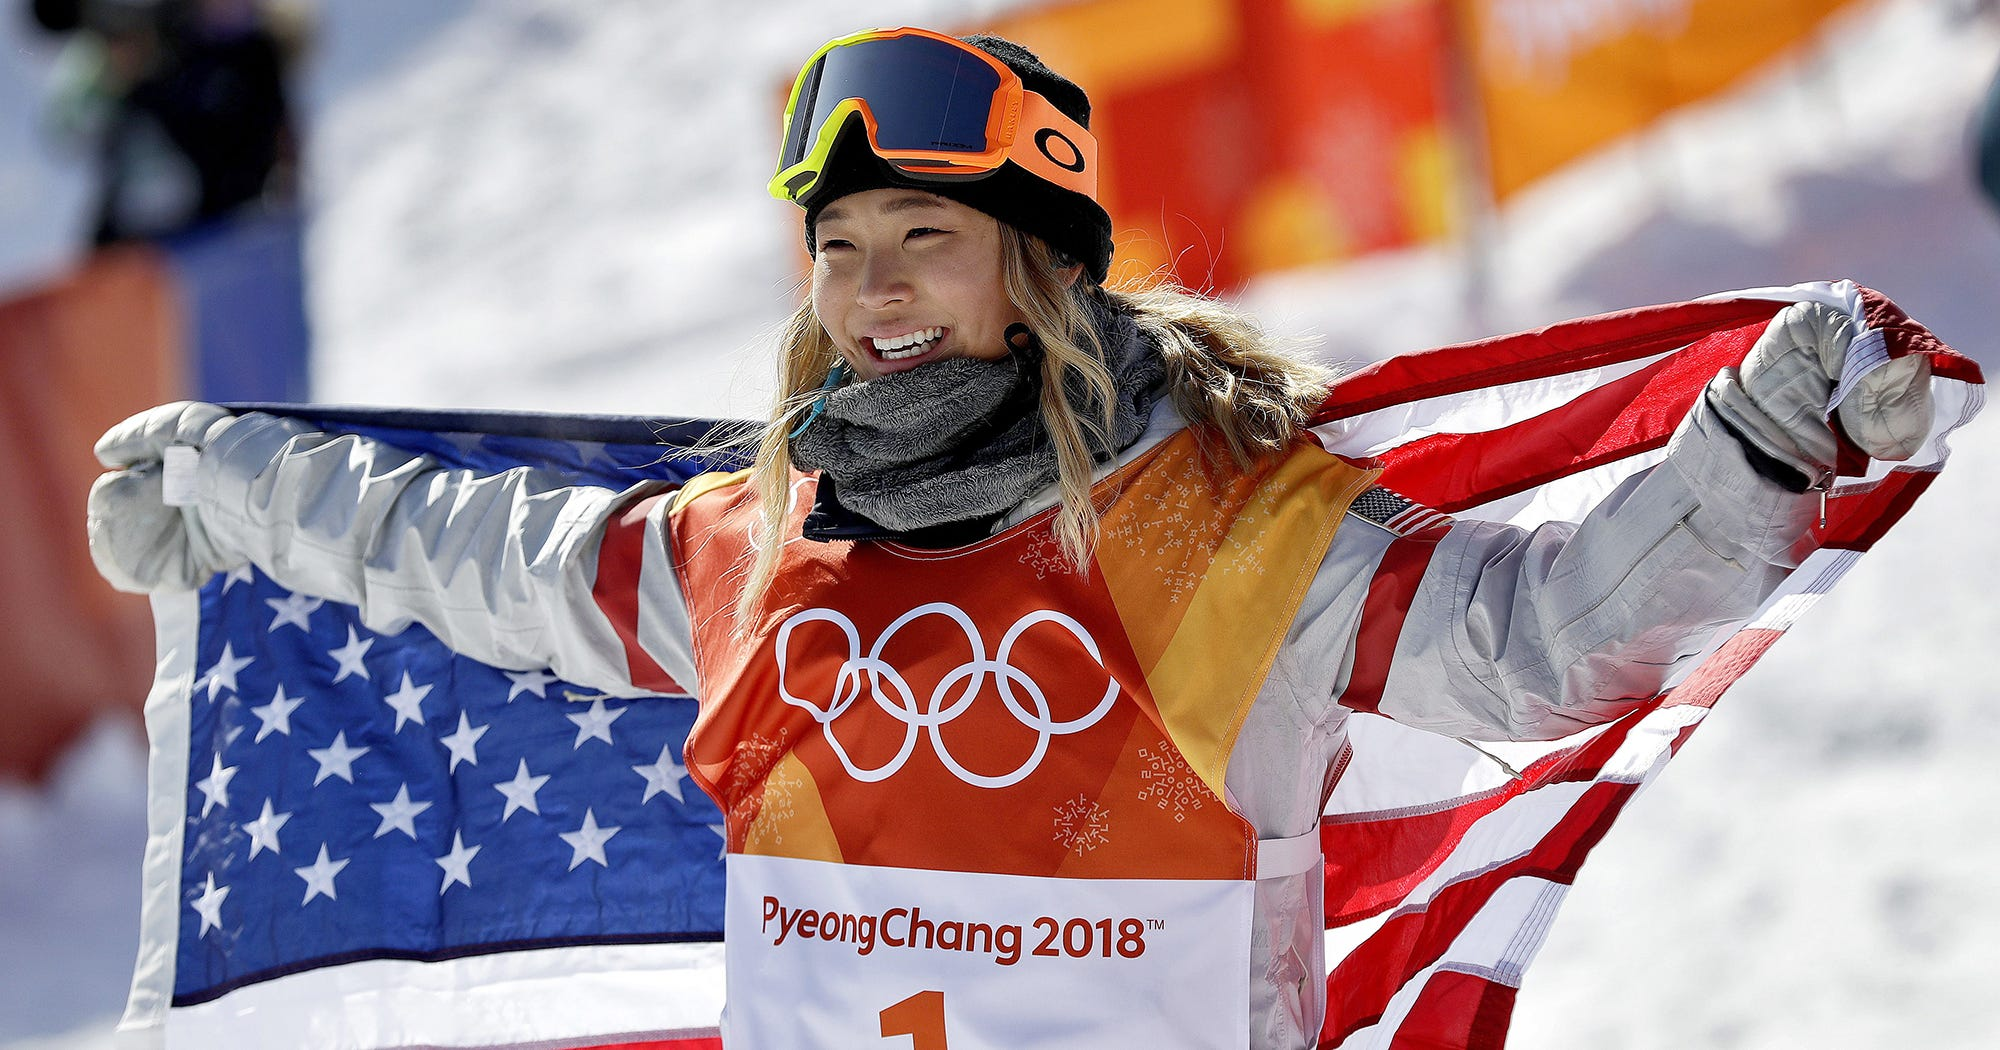 The Trick That Made Chloe Kim's Halfpipe Performance So Epic